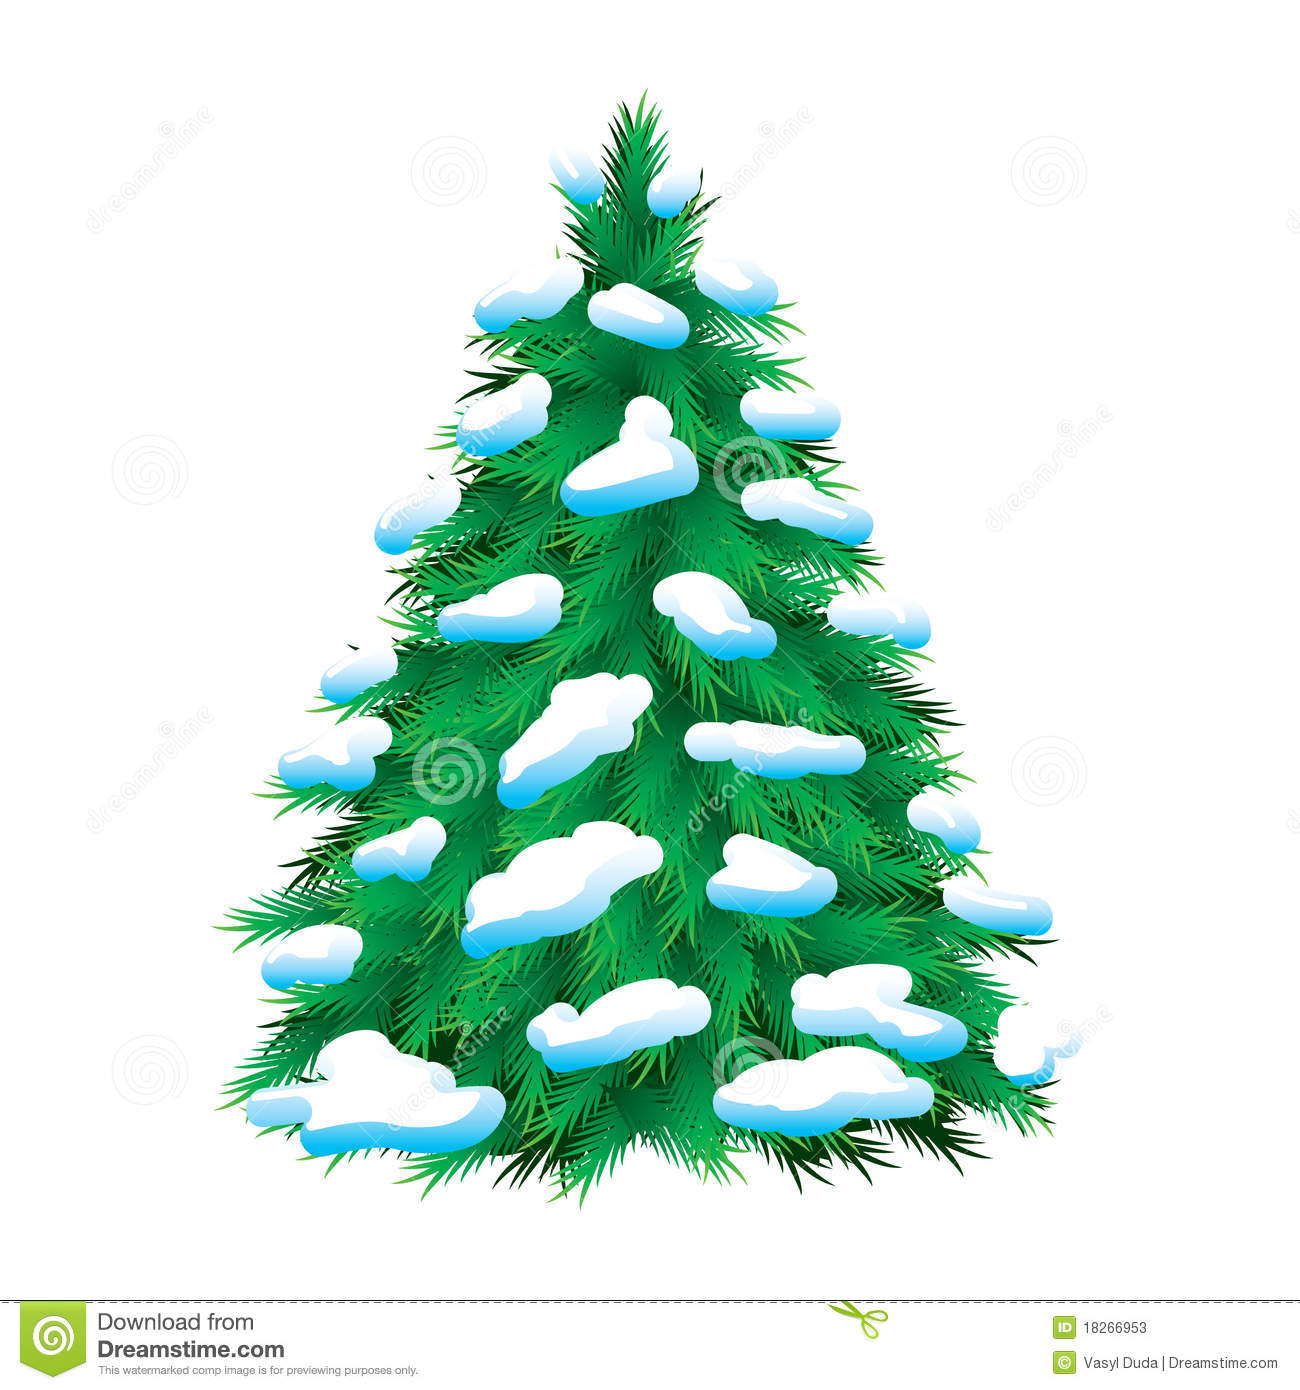 1300x1390 Snow Clipart, Suggestions For Snow Clipart, Download Snow Clipart